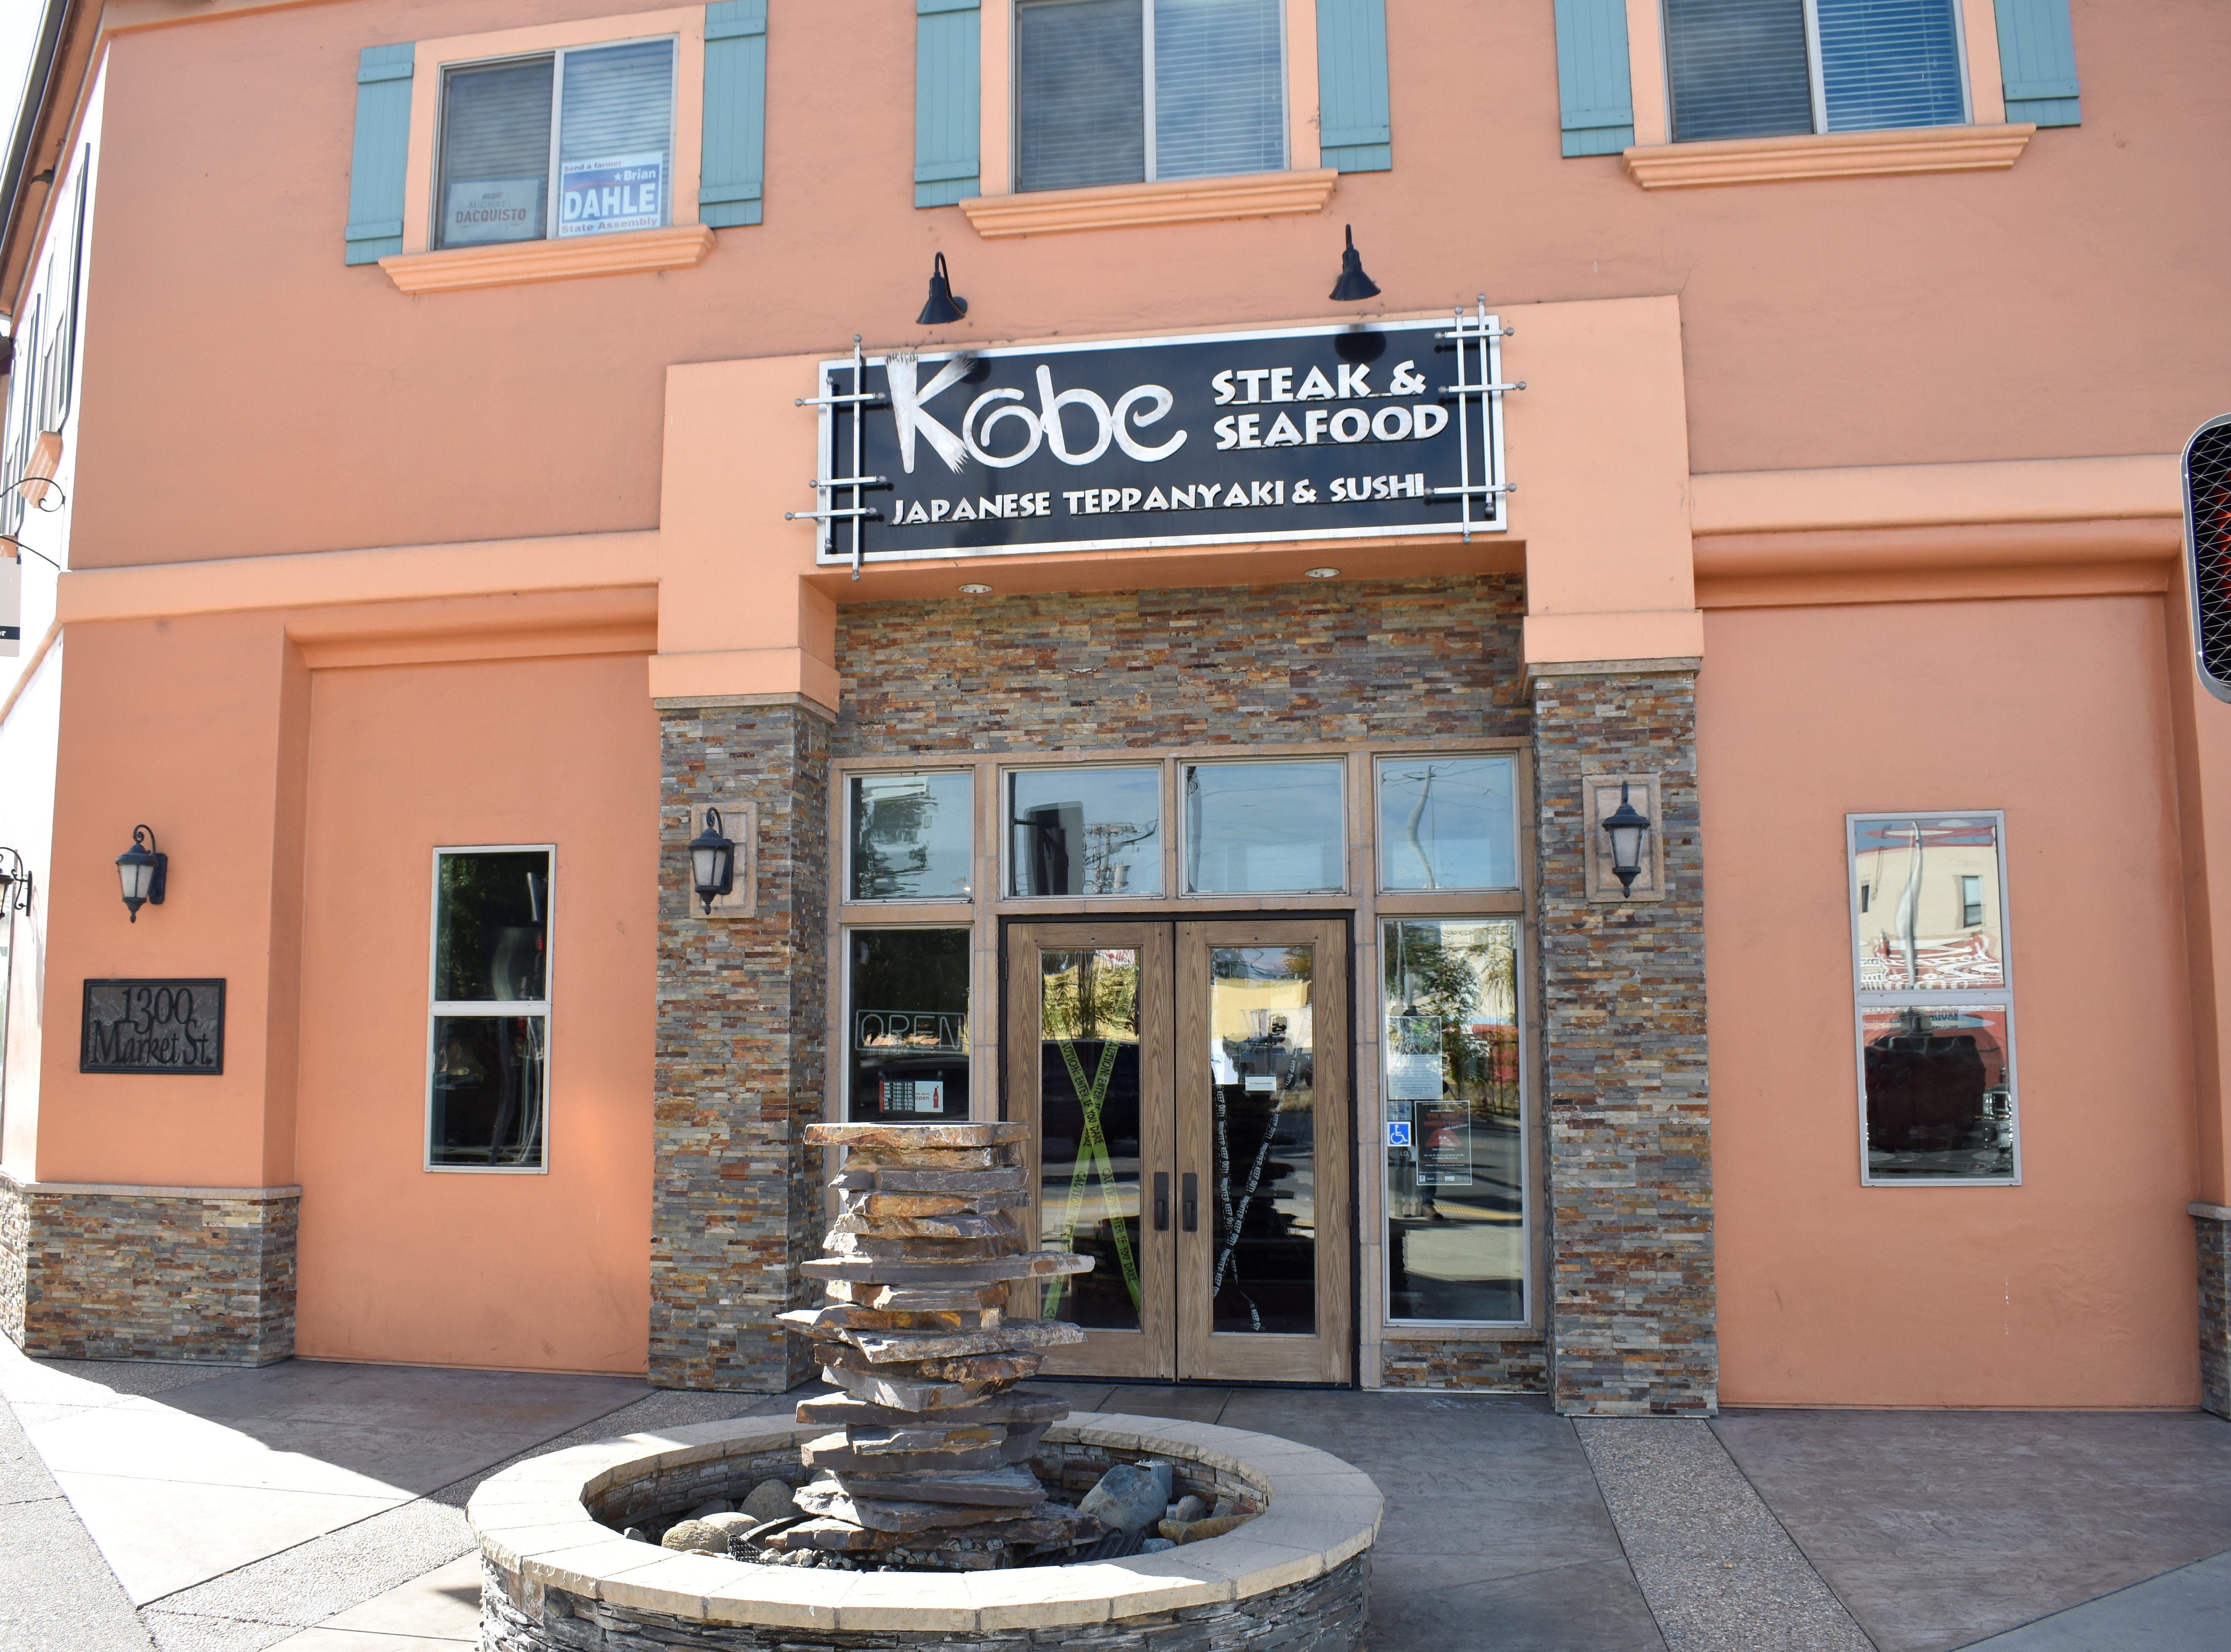 Entrance to Kobe Steak and Seafood on Market Street in downtown Redding.